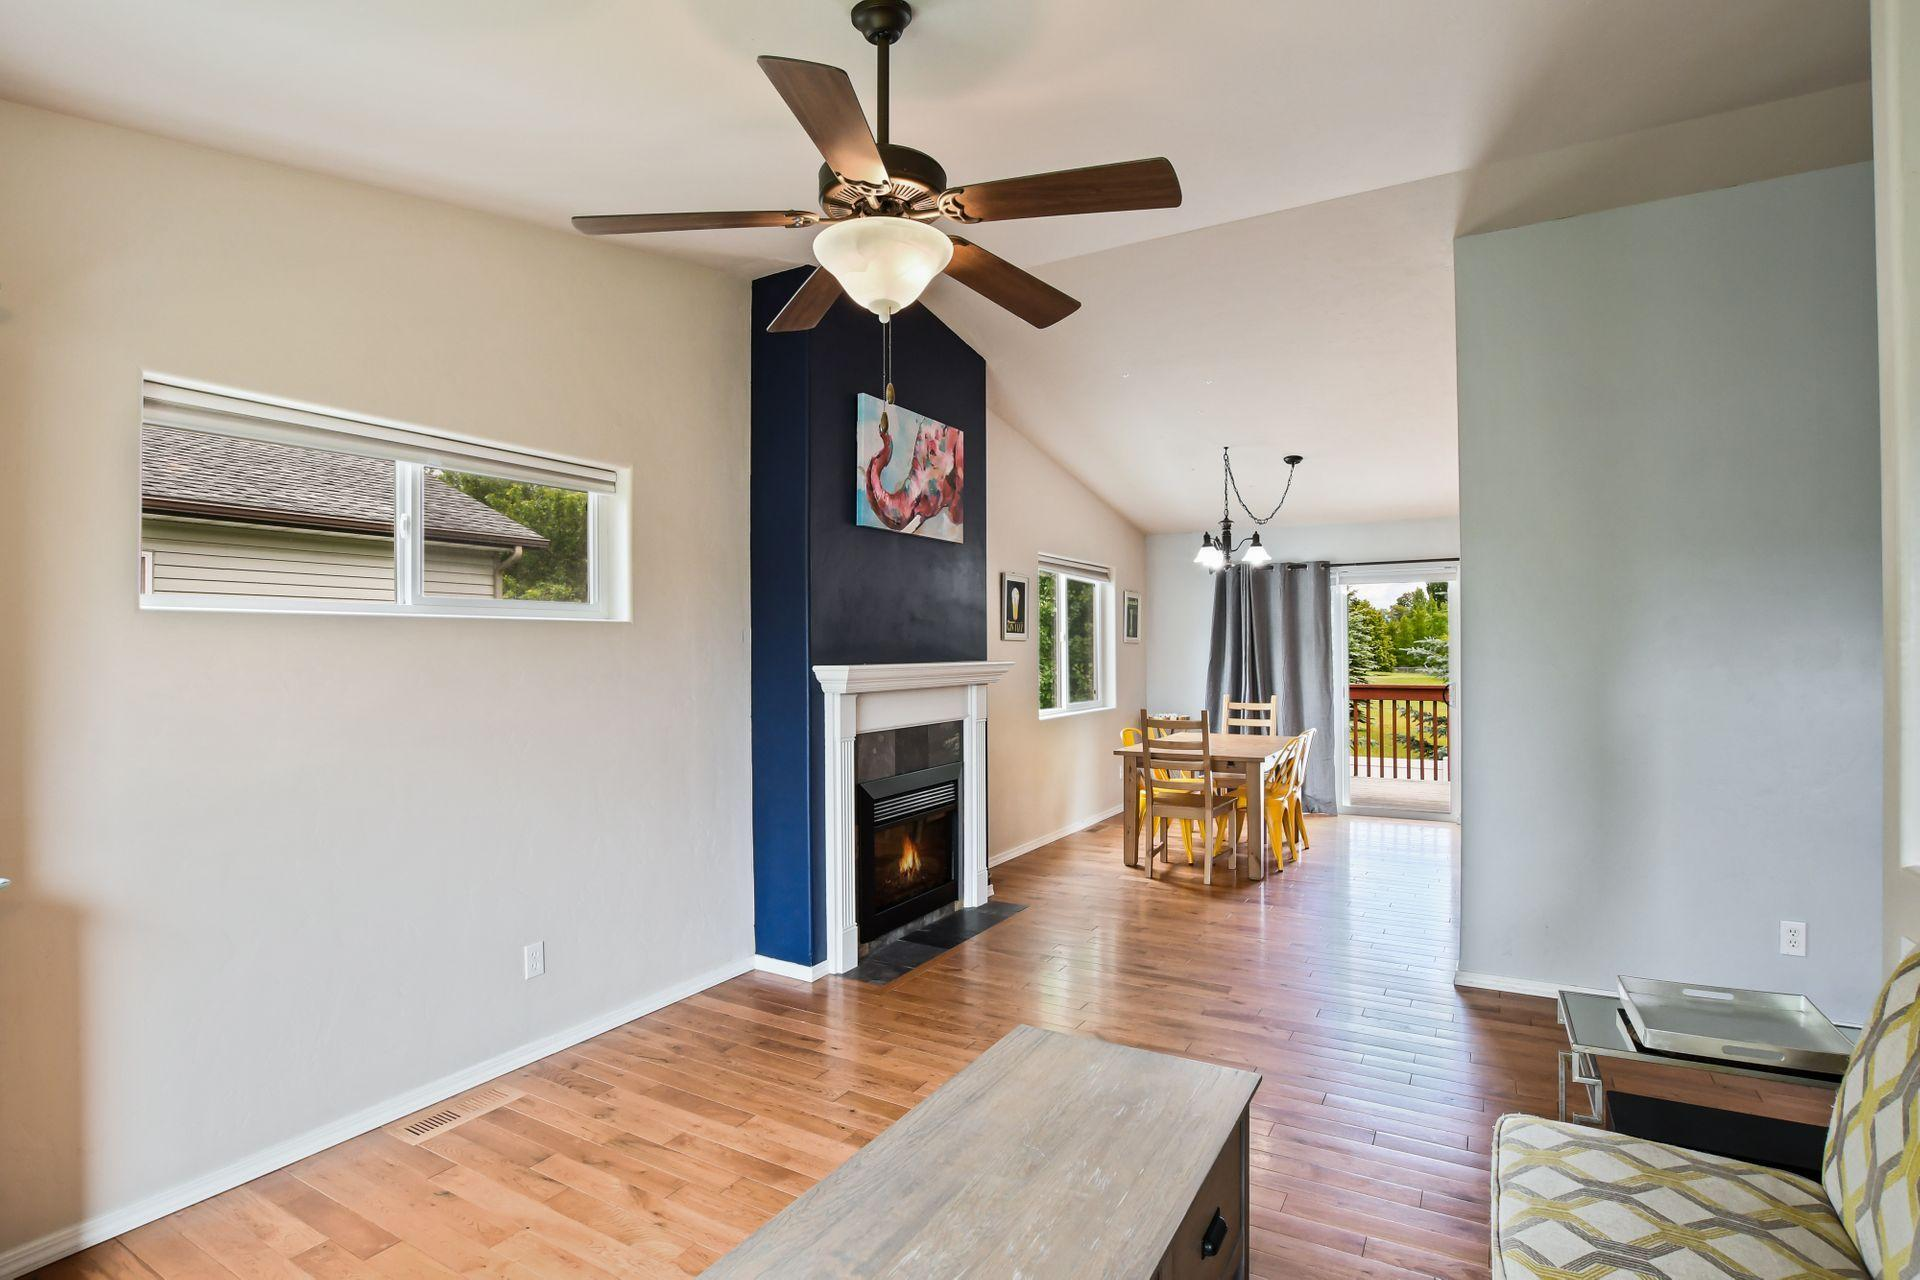 Fireplace, Living Room, Dining Room